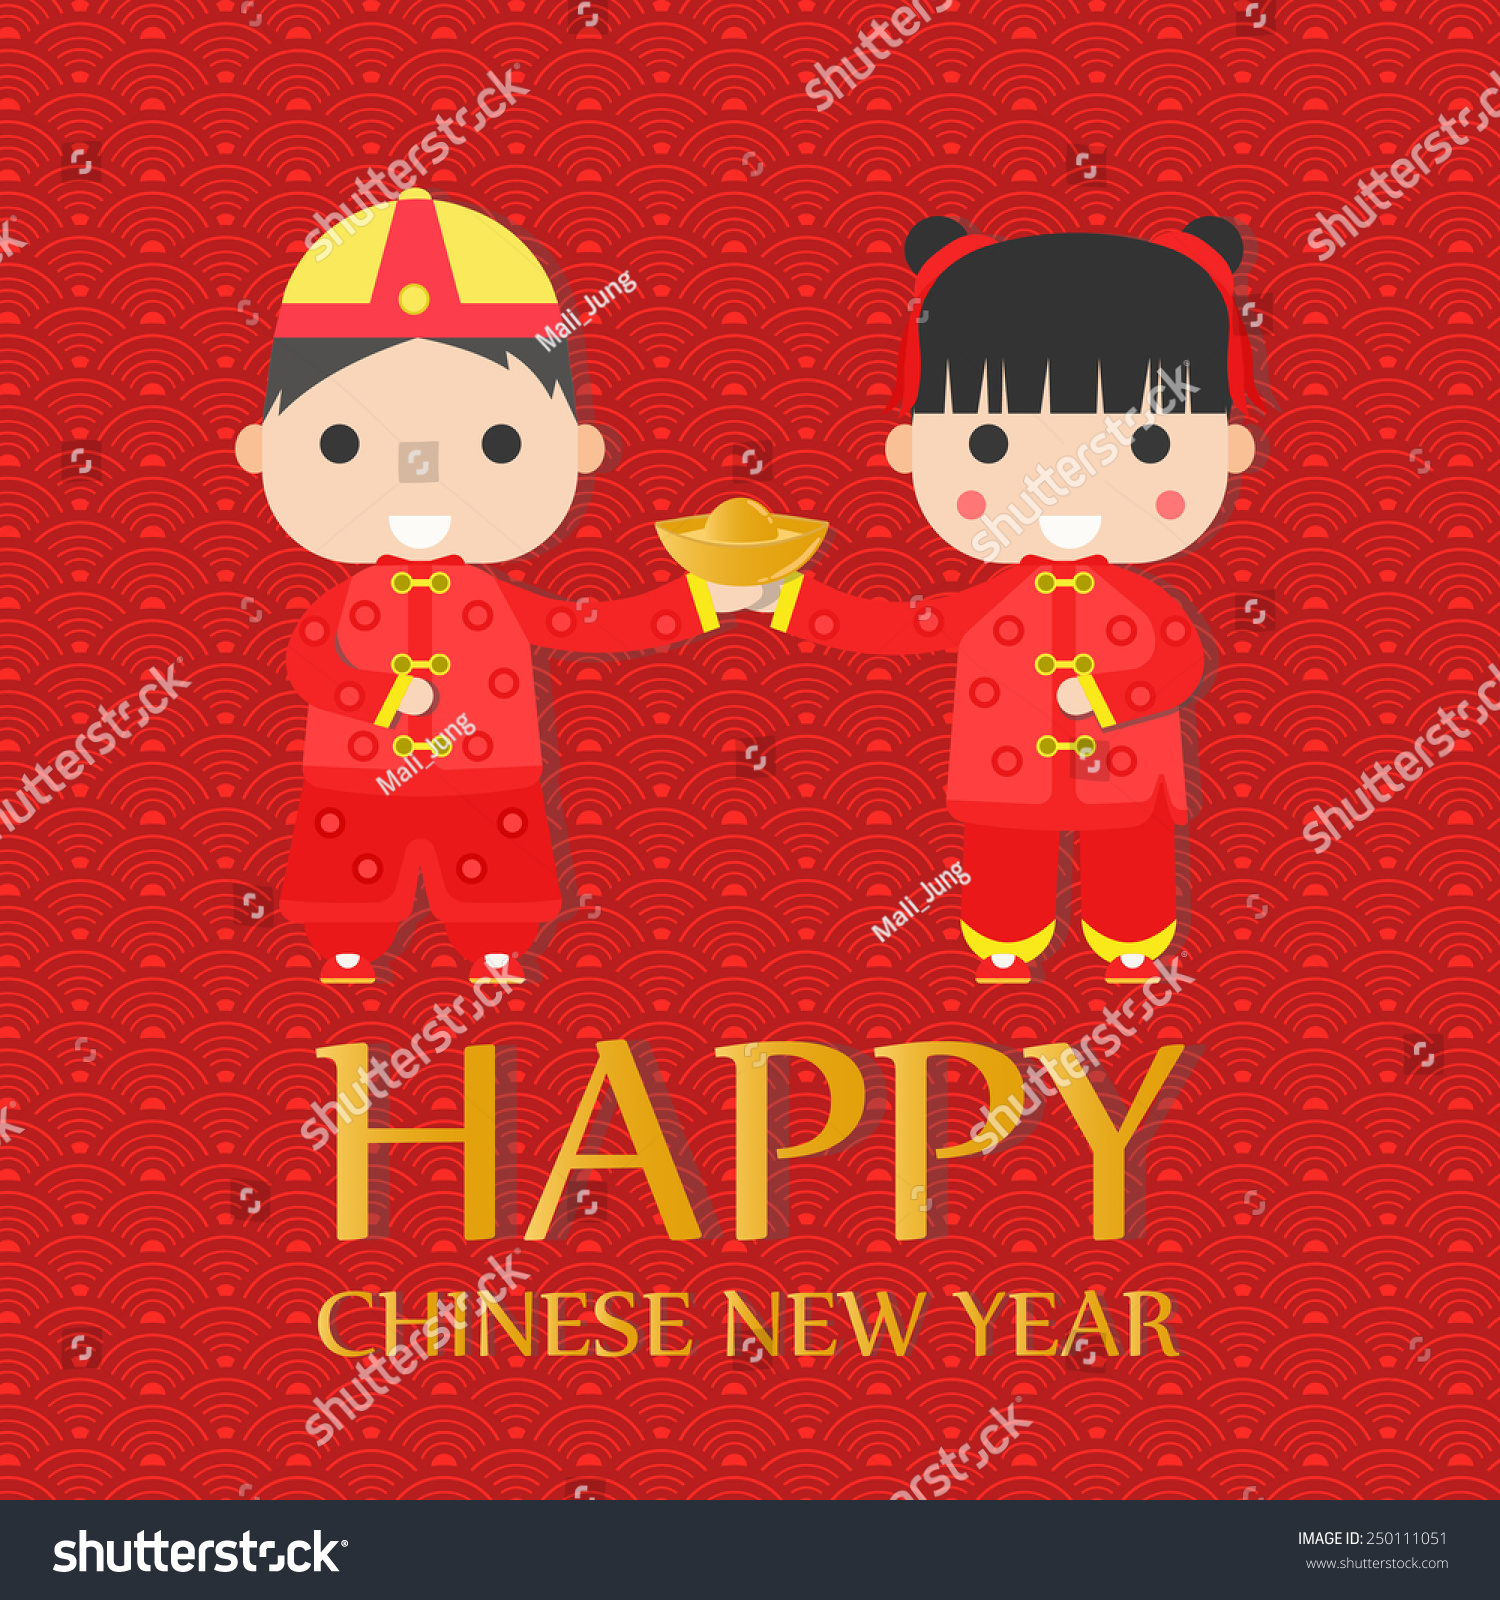 Happy Chinese New Year Greetings Childrenvector Stock Vector